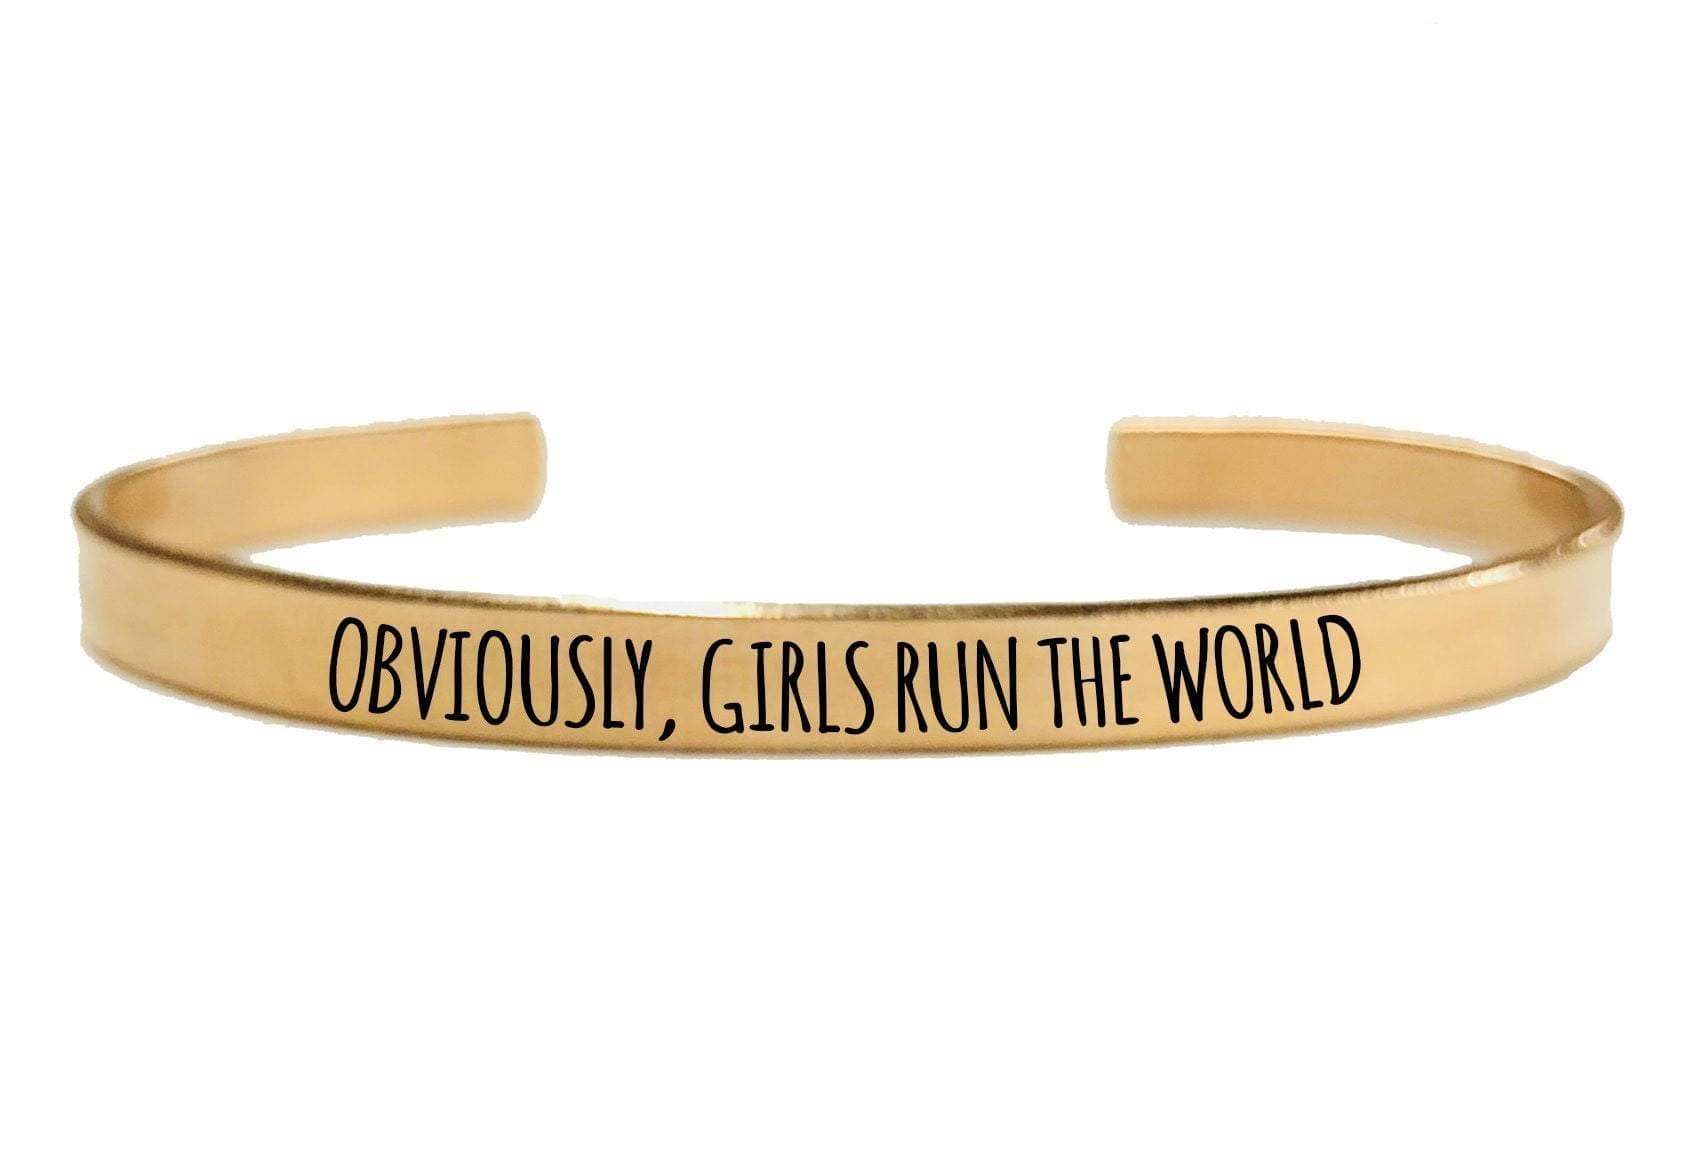 OBVIOUSLY GIRLS RUN THE WORLD CUFF BRACELET